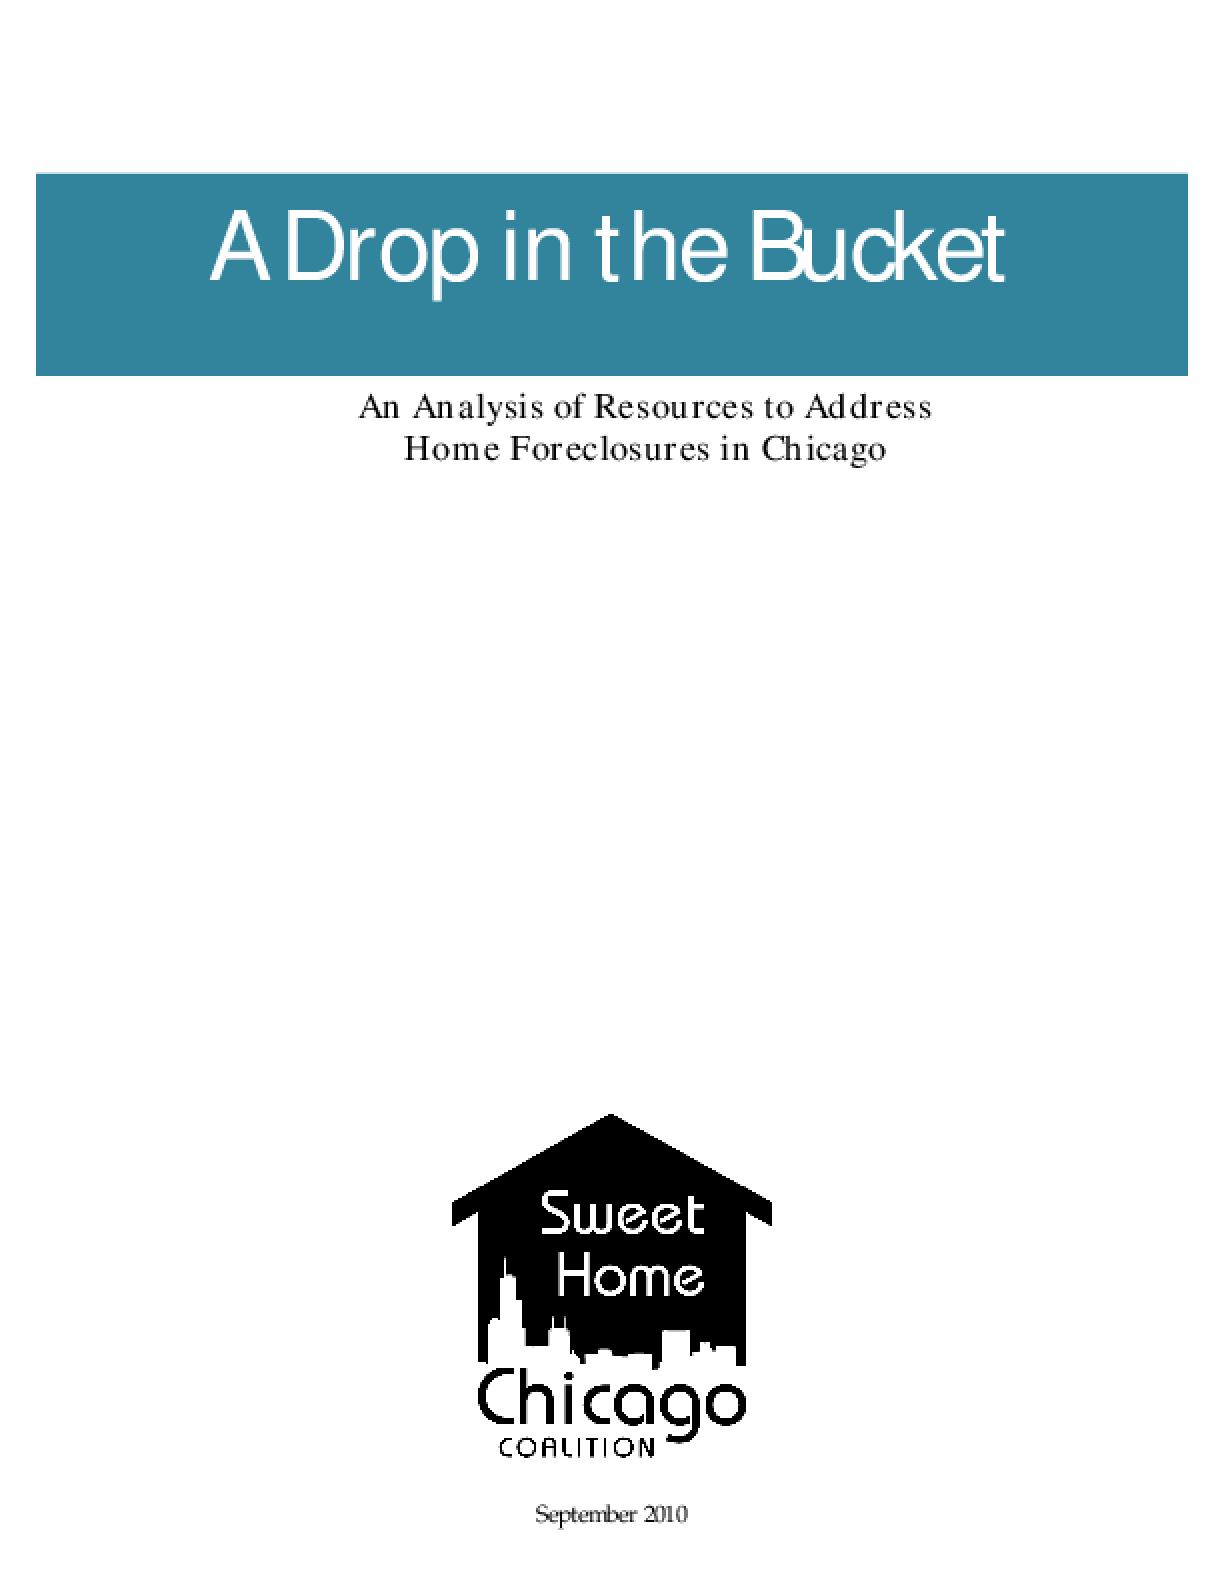 A Drop in the Bucket: An Analysis of Resources to Address Home Foreclosure in Chicago